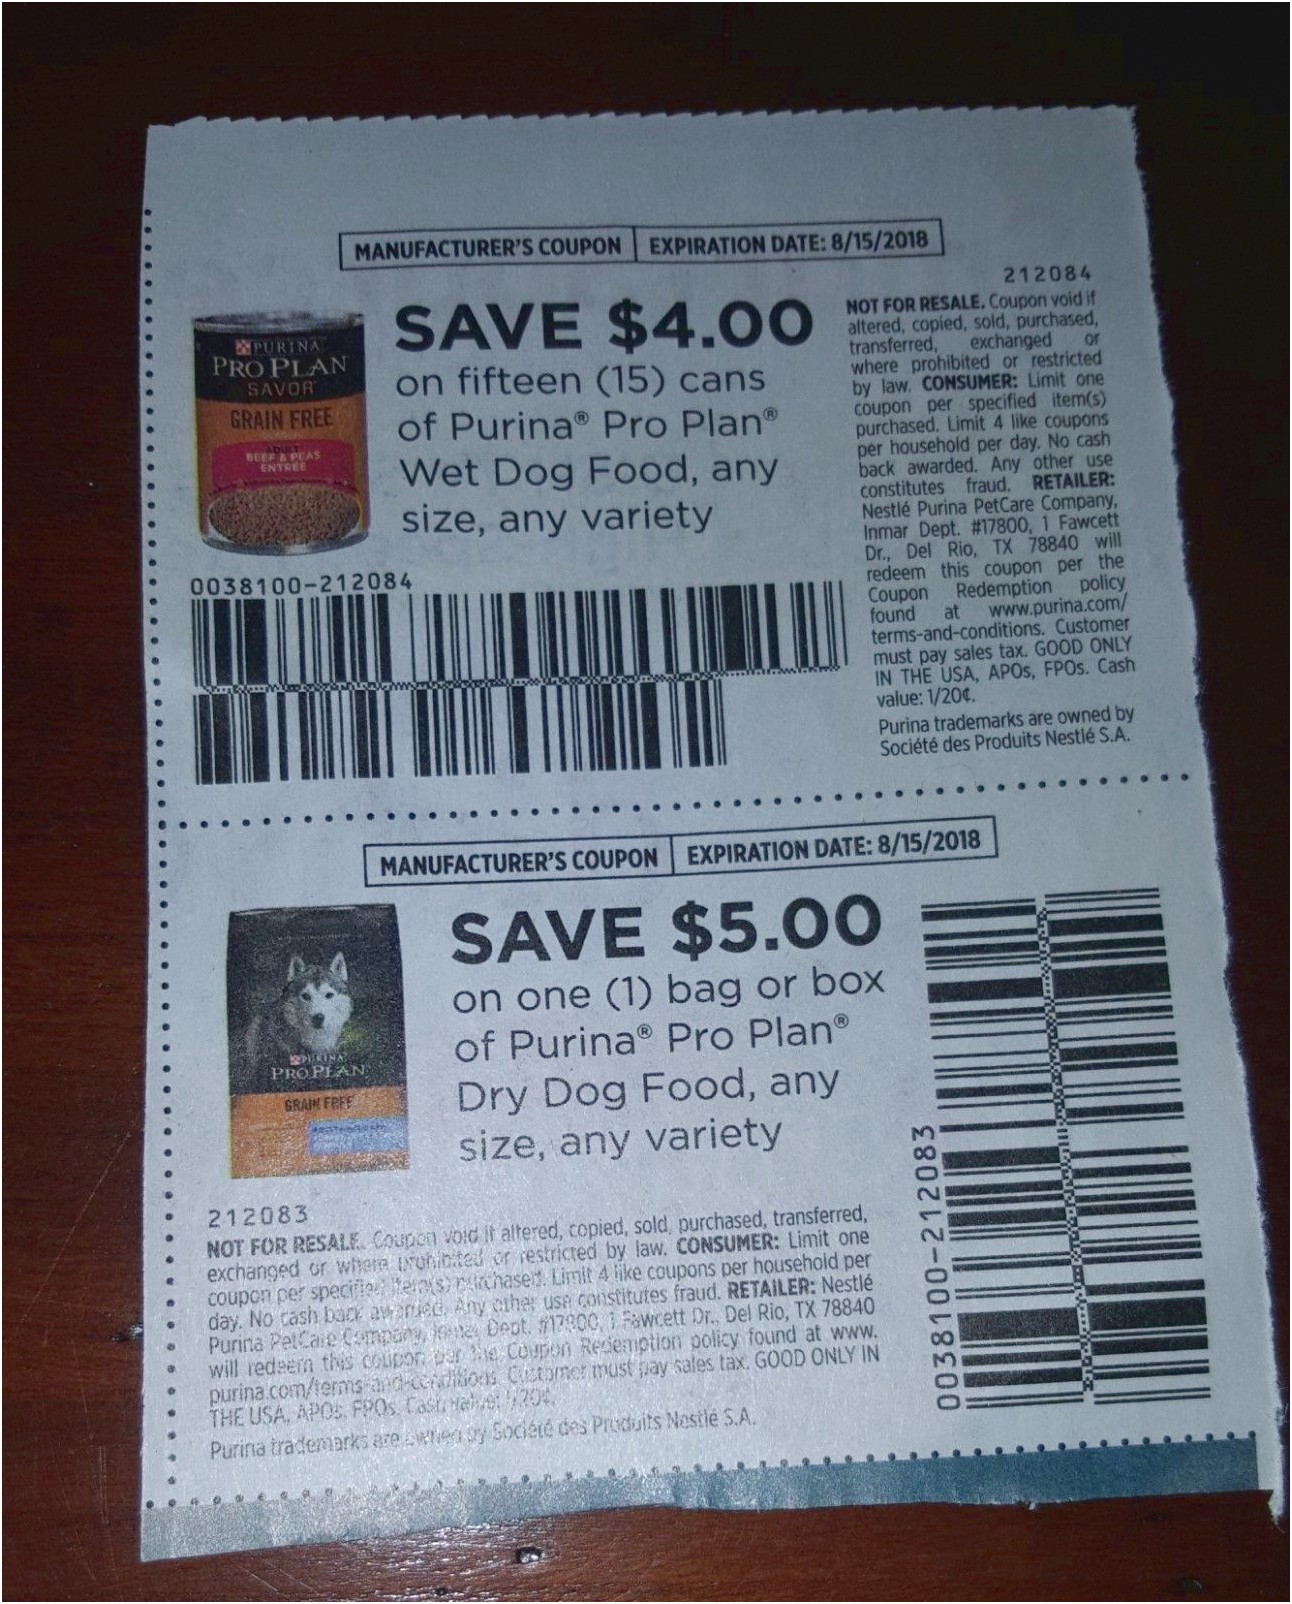 Pro Plan Dog Food Coupons